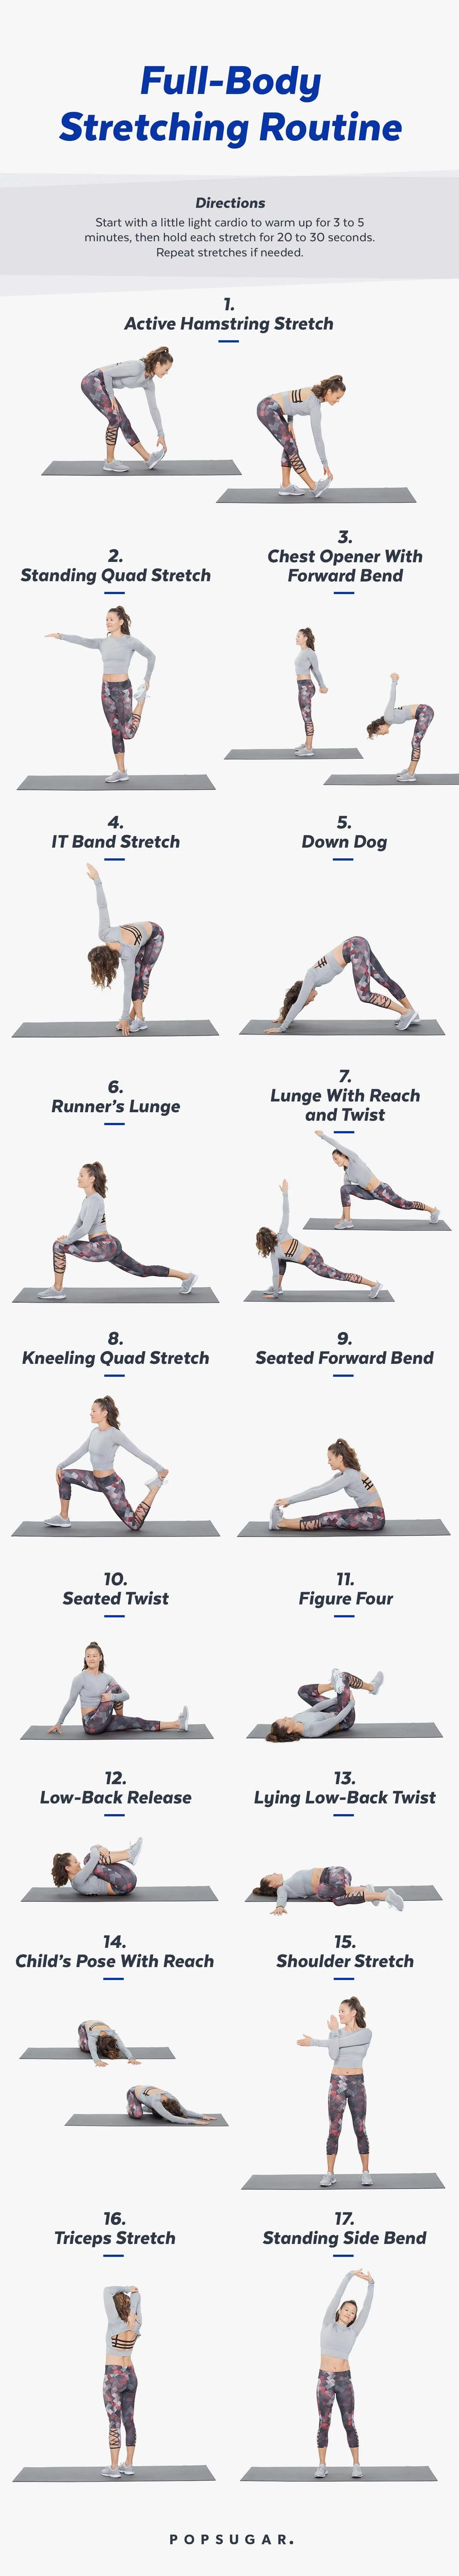 Printable Stretch Routine